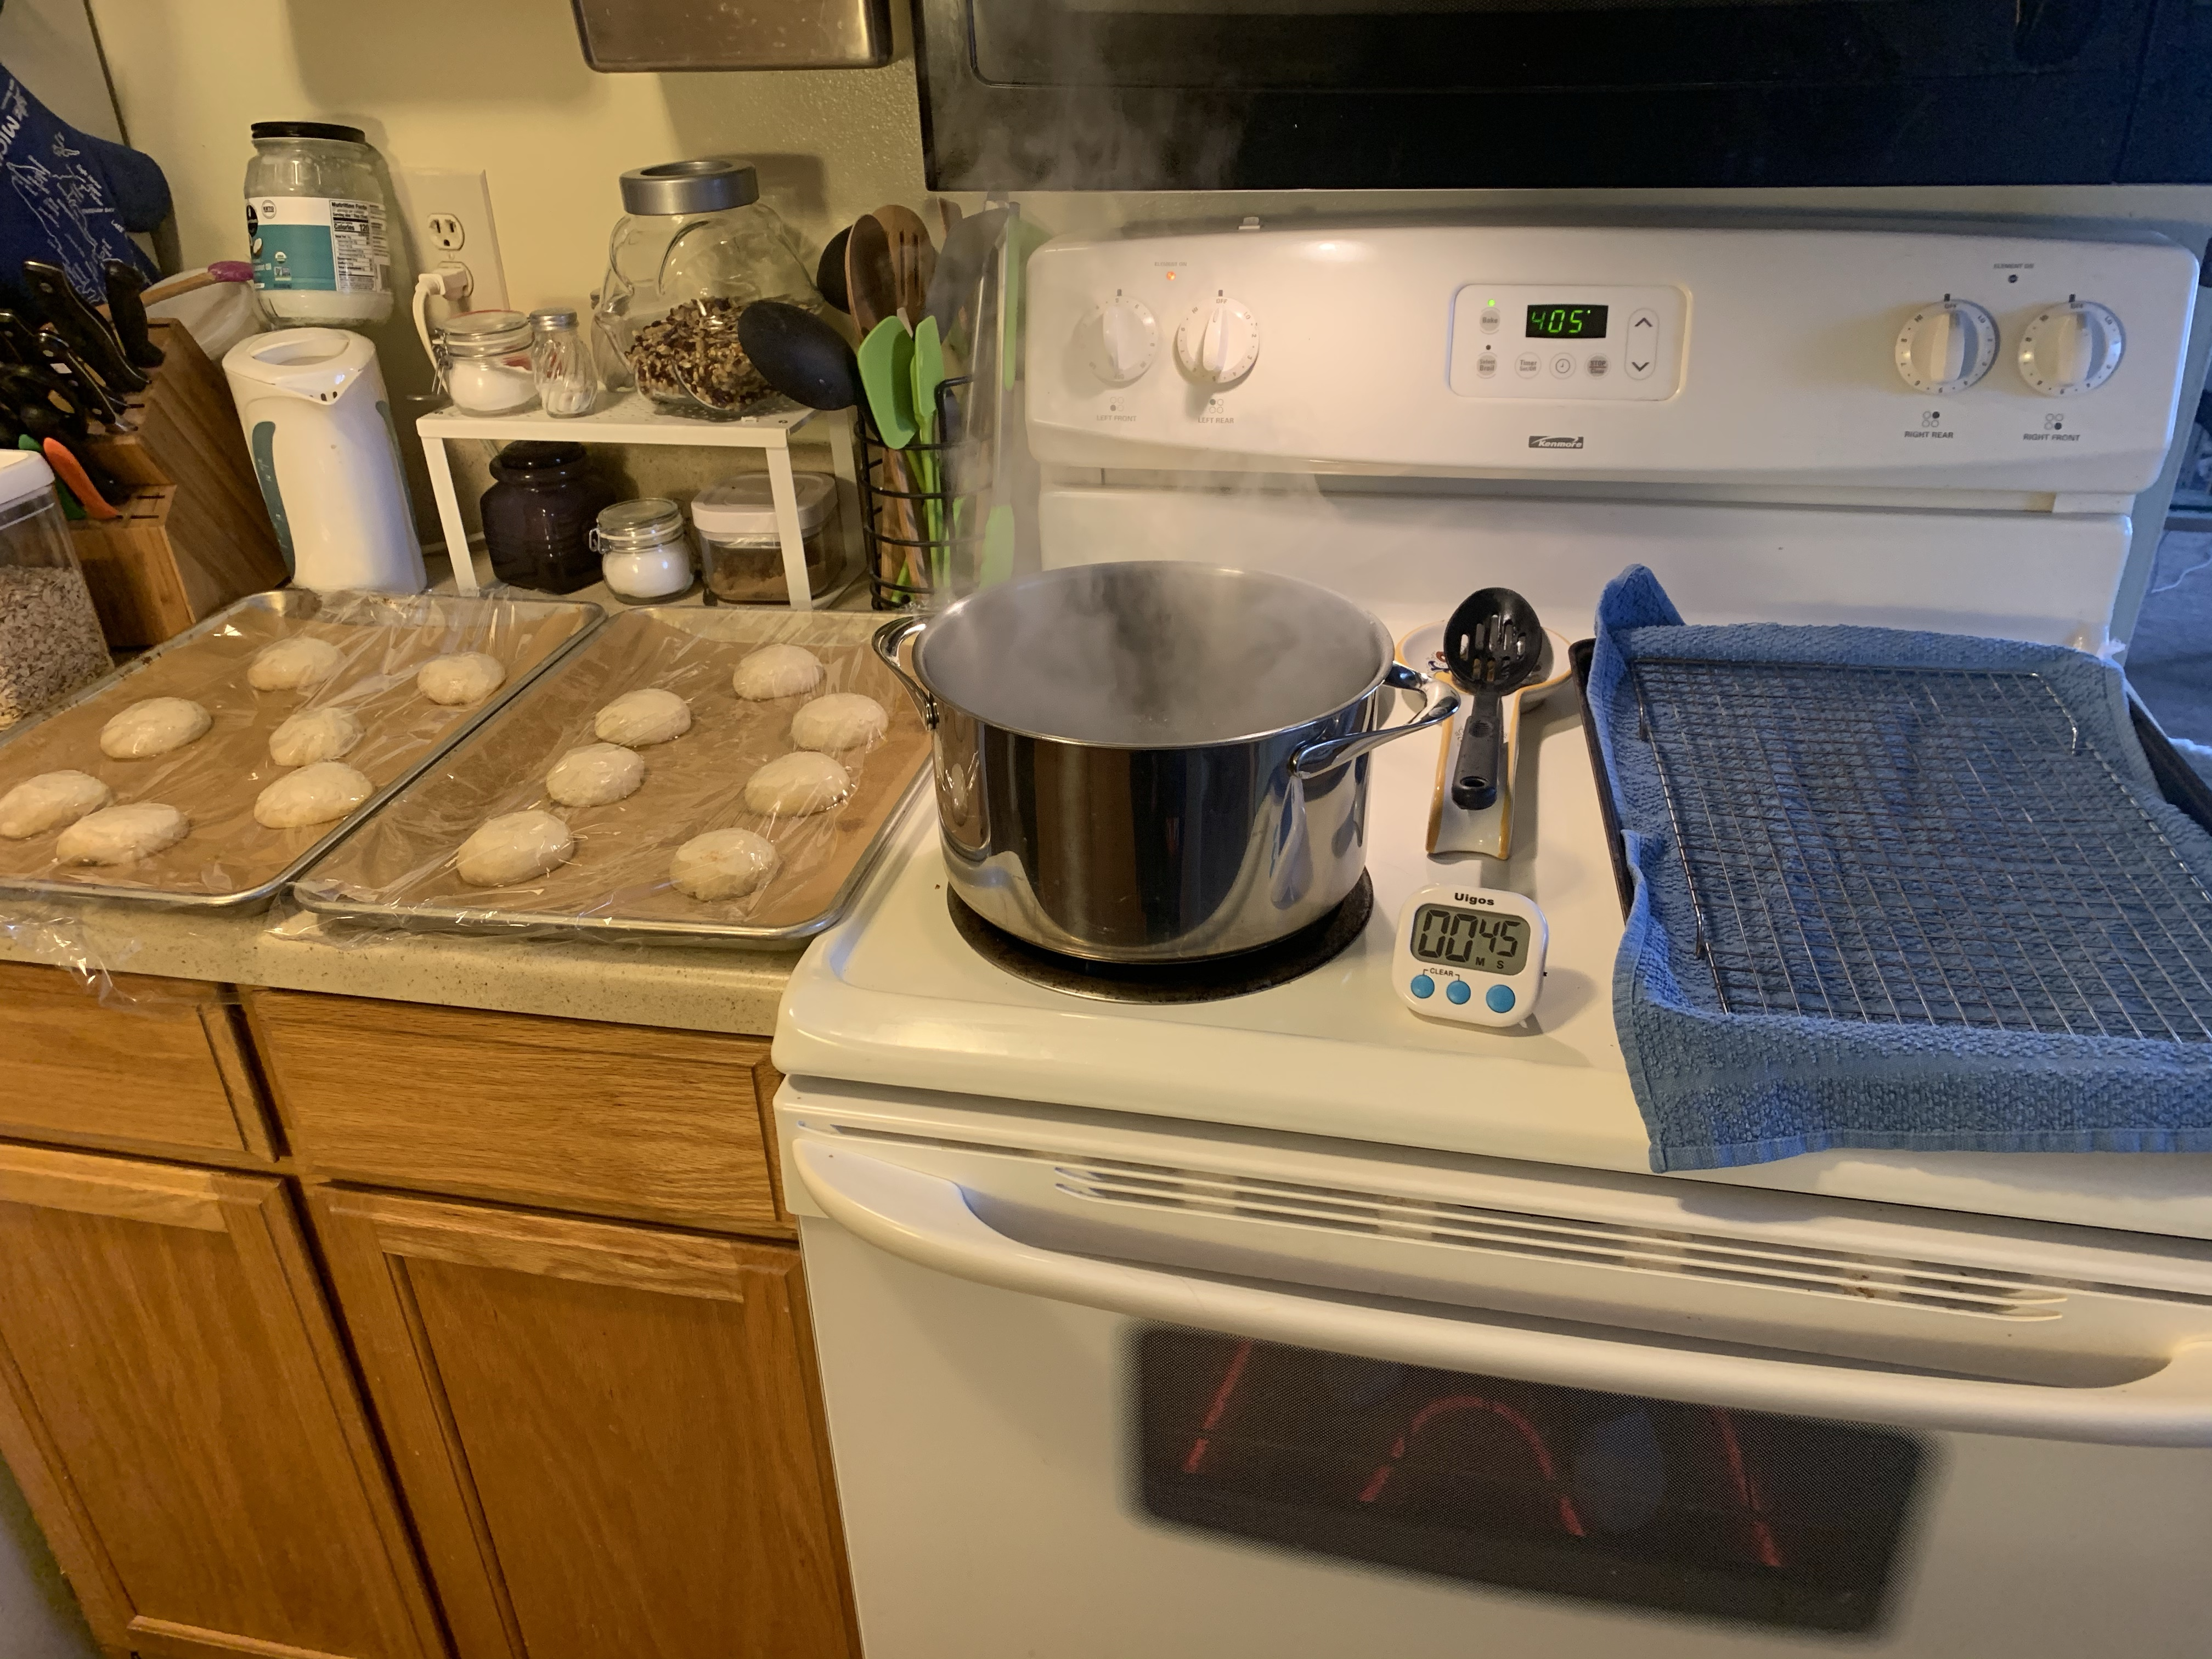 Left to right: counter with proofed rolls, still covered in cling wrap. Stove with boiling pot, timer set to 45 seconds, slotted spoon, and wire rack on on a baking tray that's lined with a towel. The oven is set to 405.